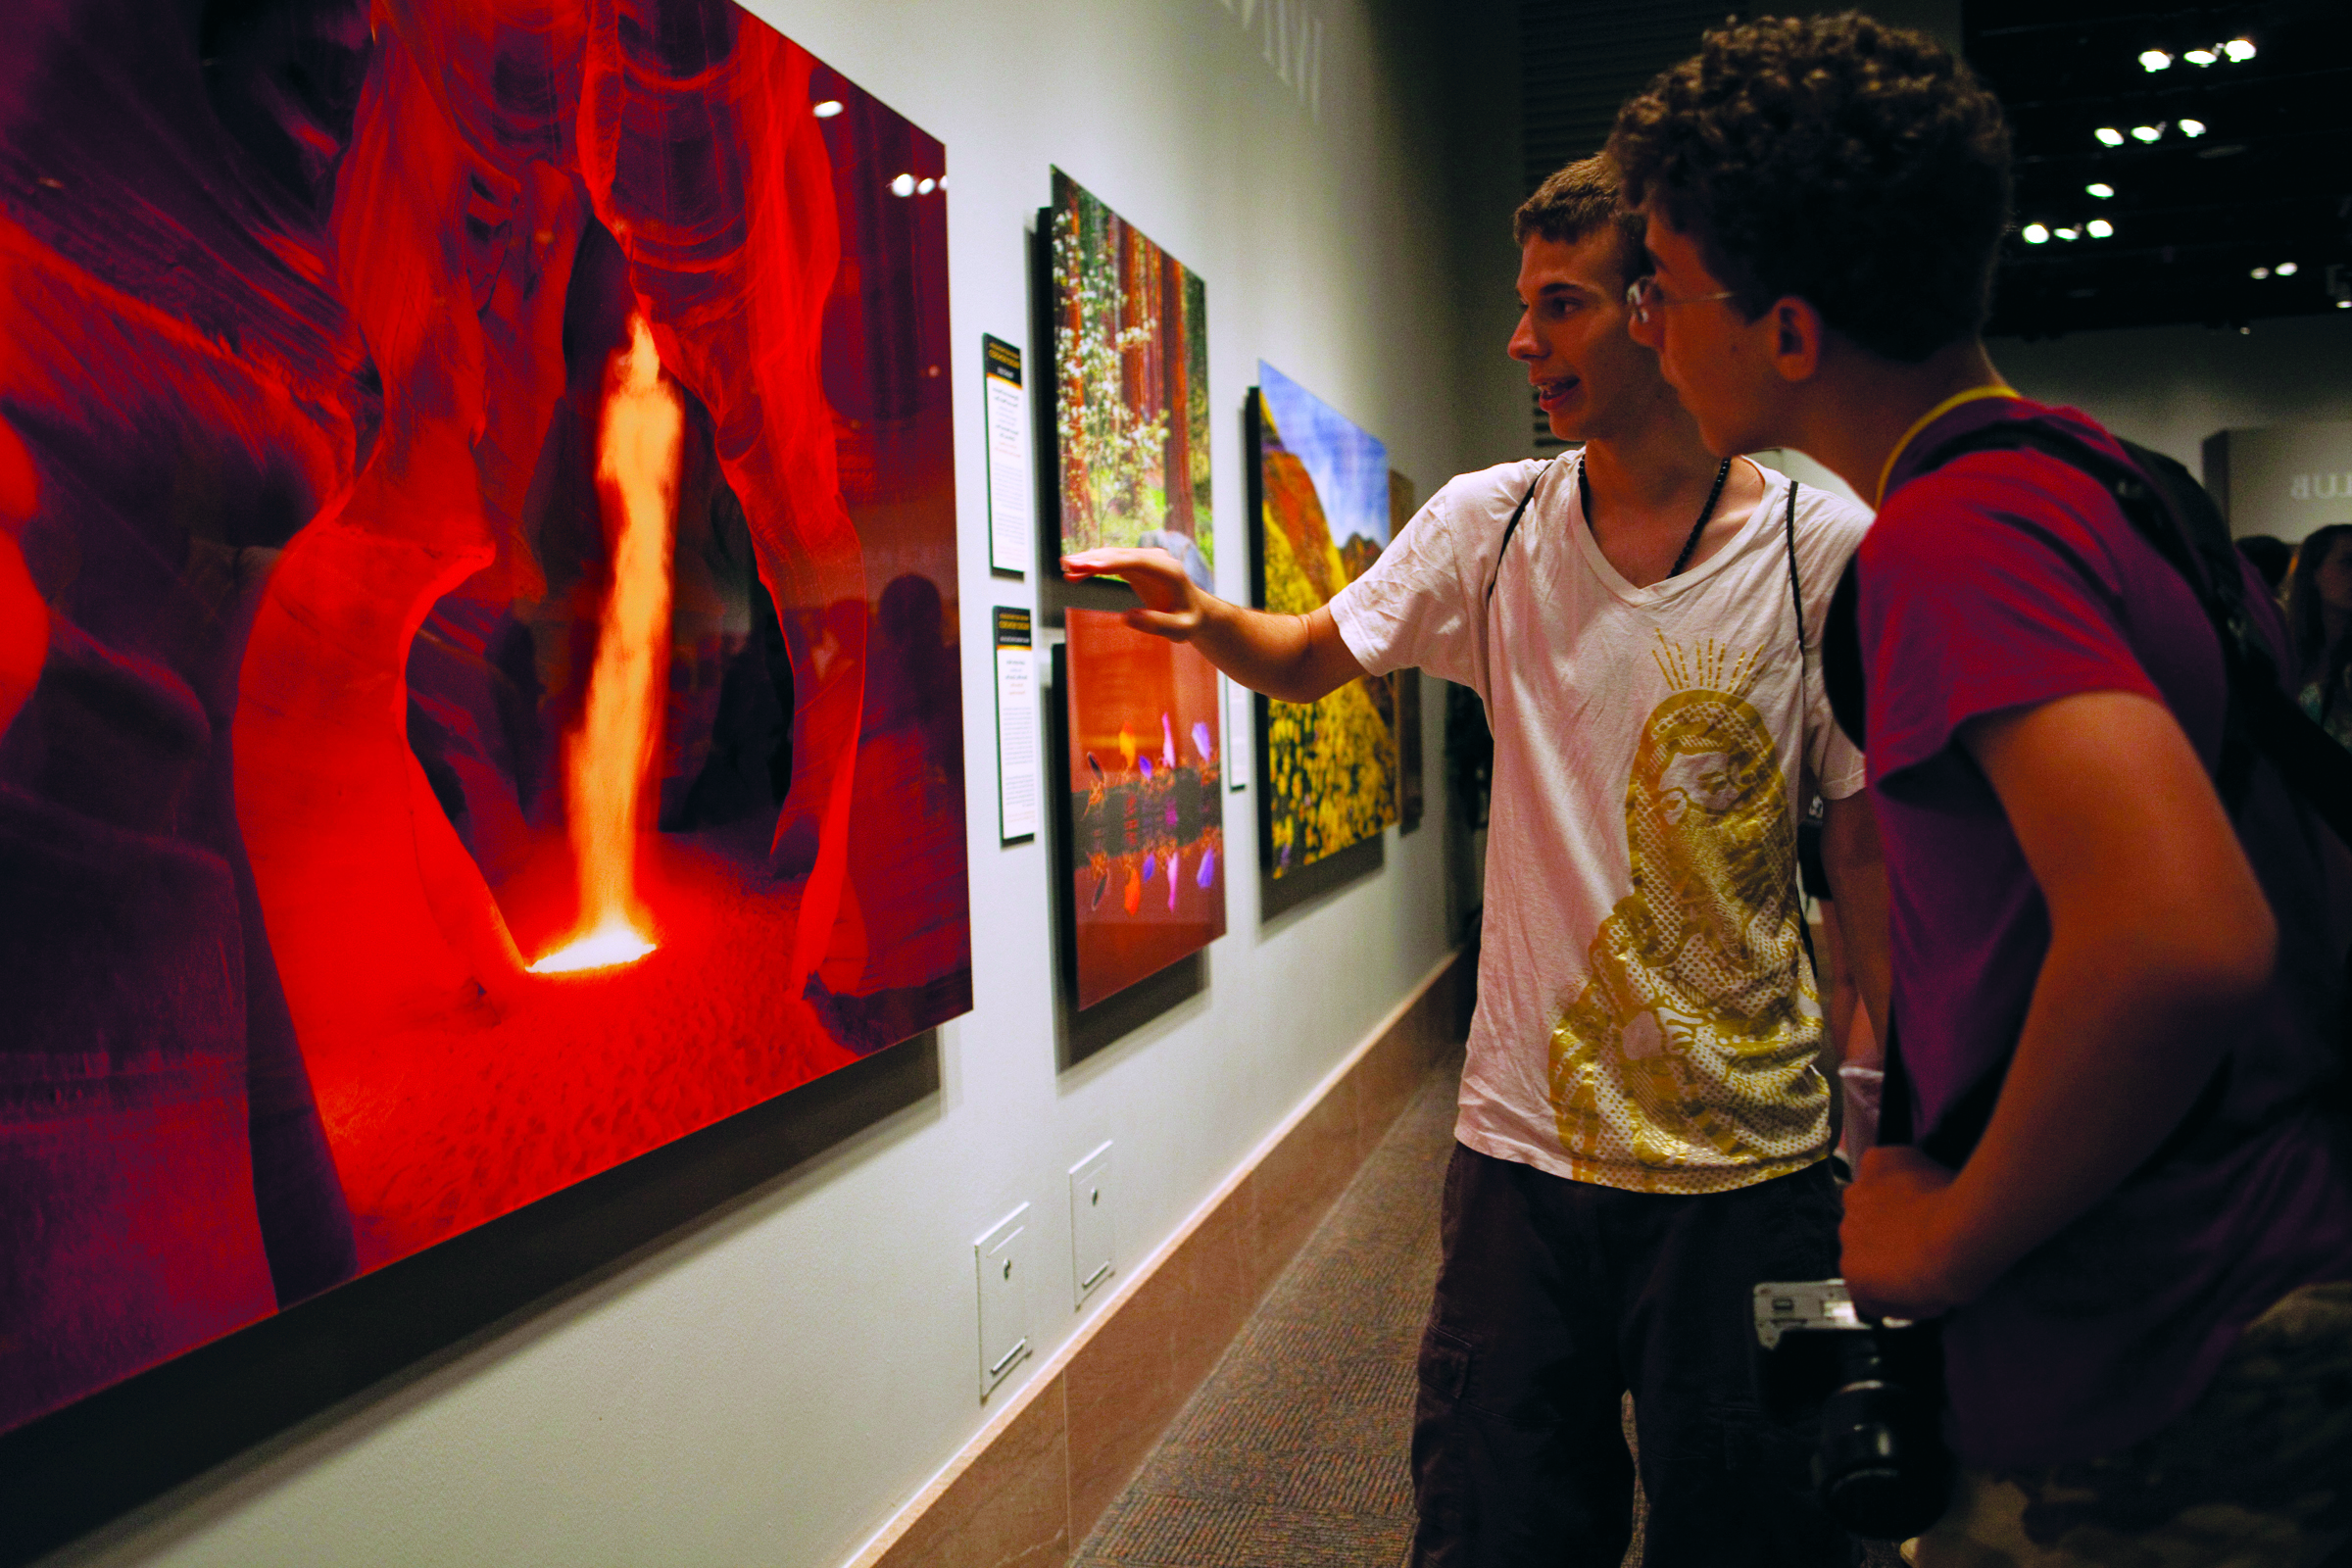 Students analyzing a photograph at an art museum